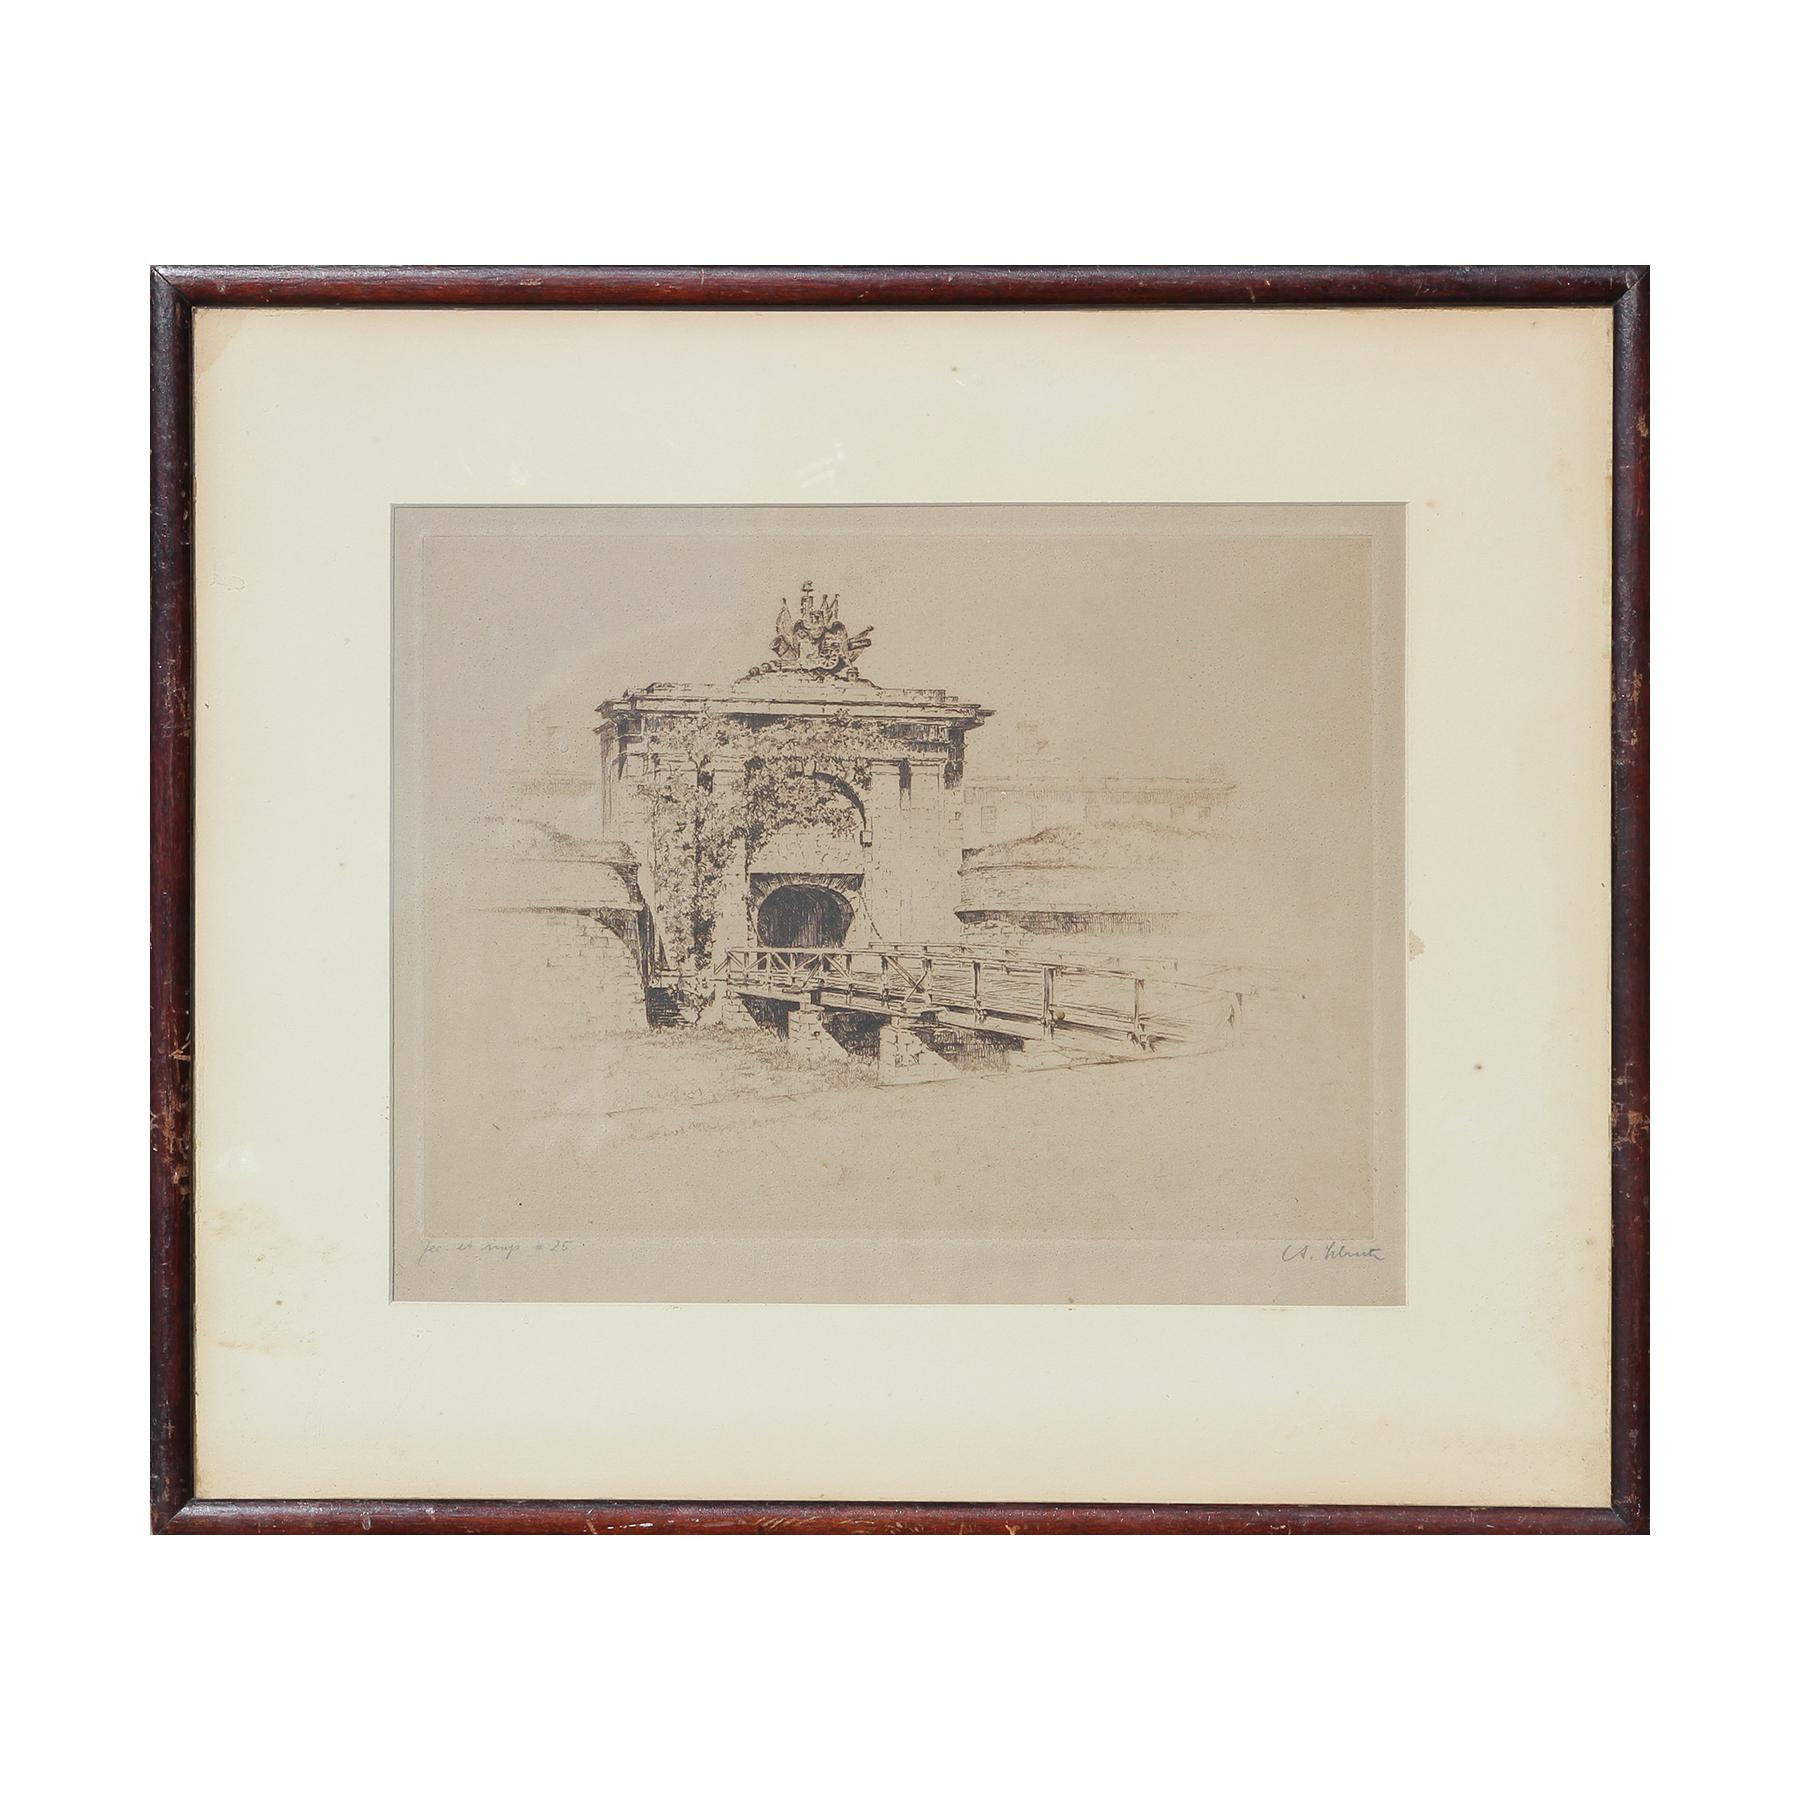 Etching of Fort Jay at Governor's Island from Three Hundred Years of NY Series